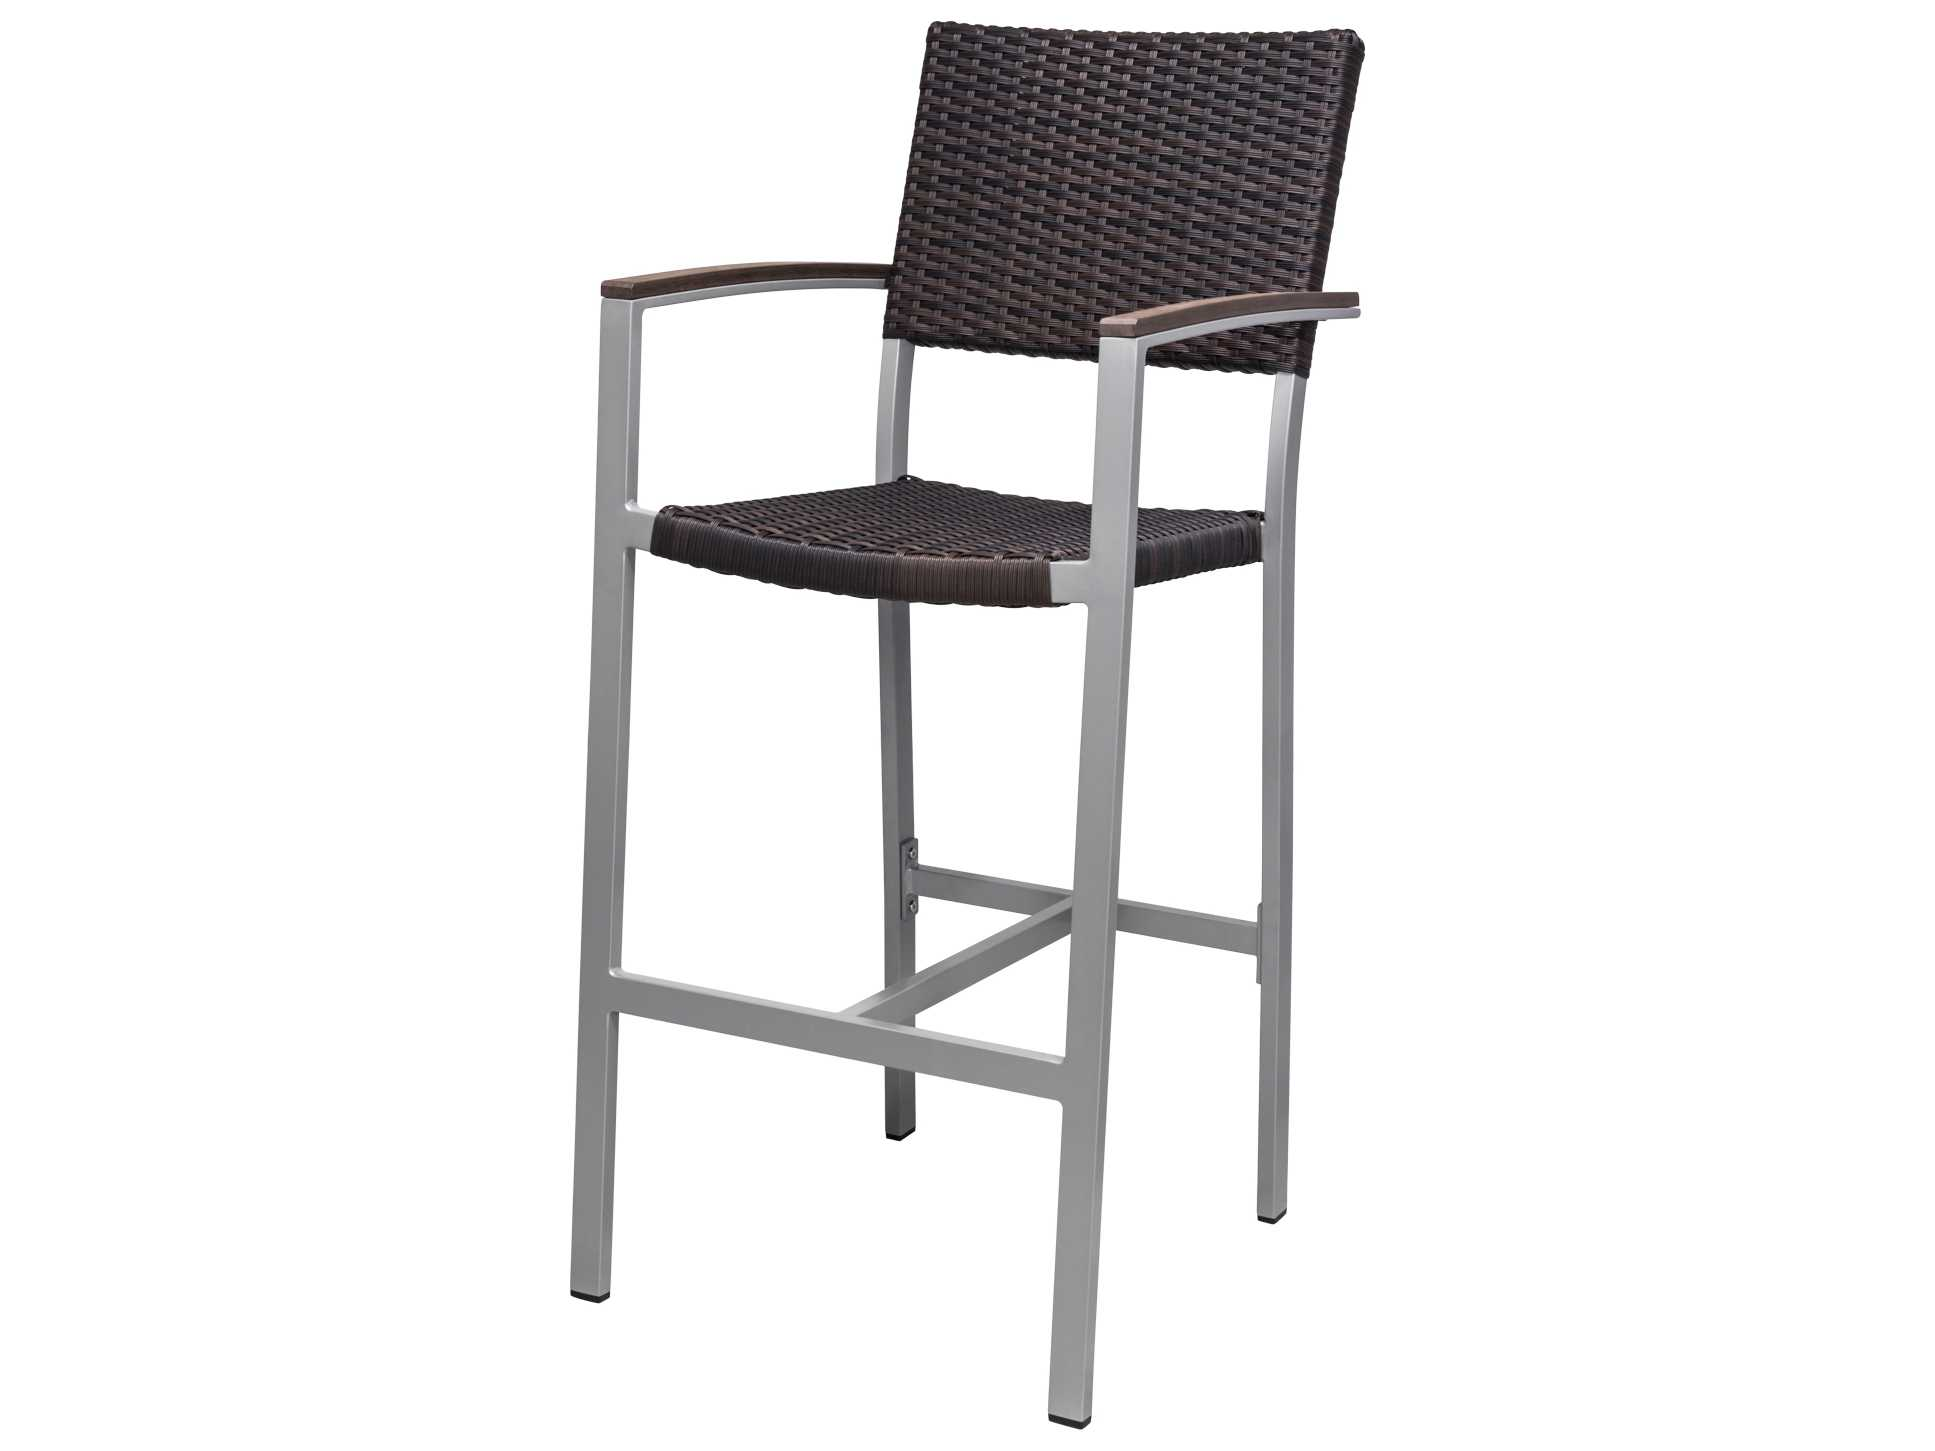 Source Outdoor Furniture Fiji Wicker Bar Arm Chair Sc